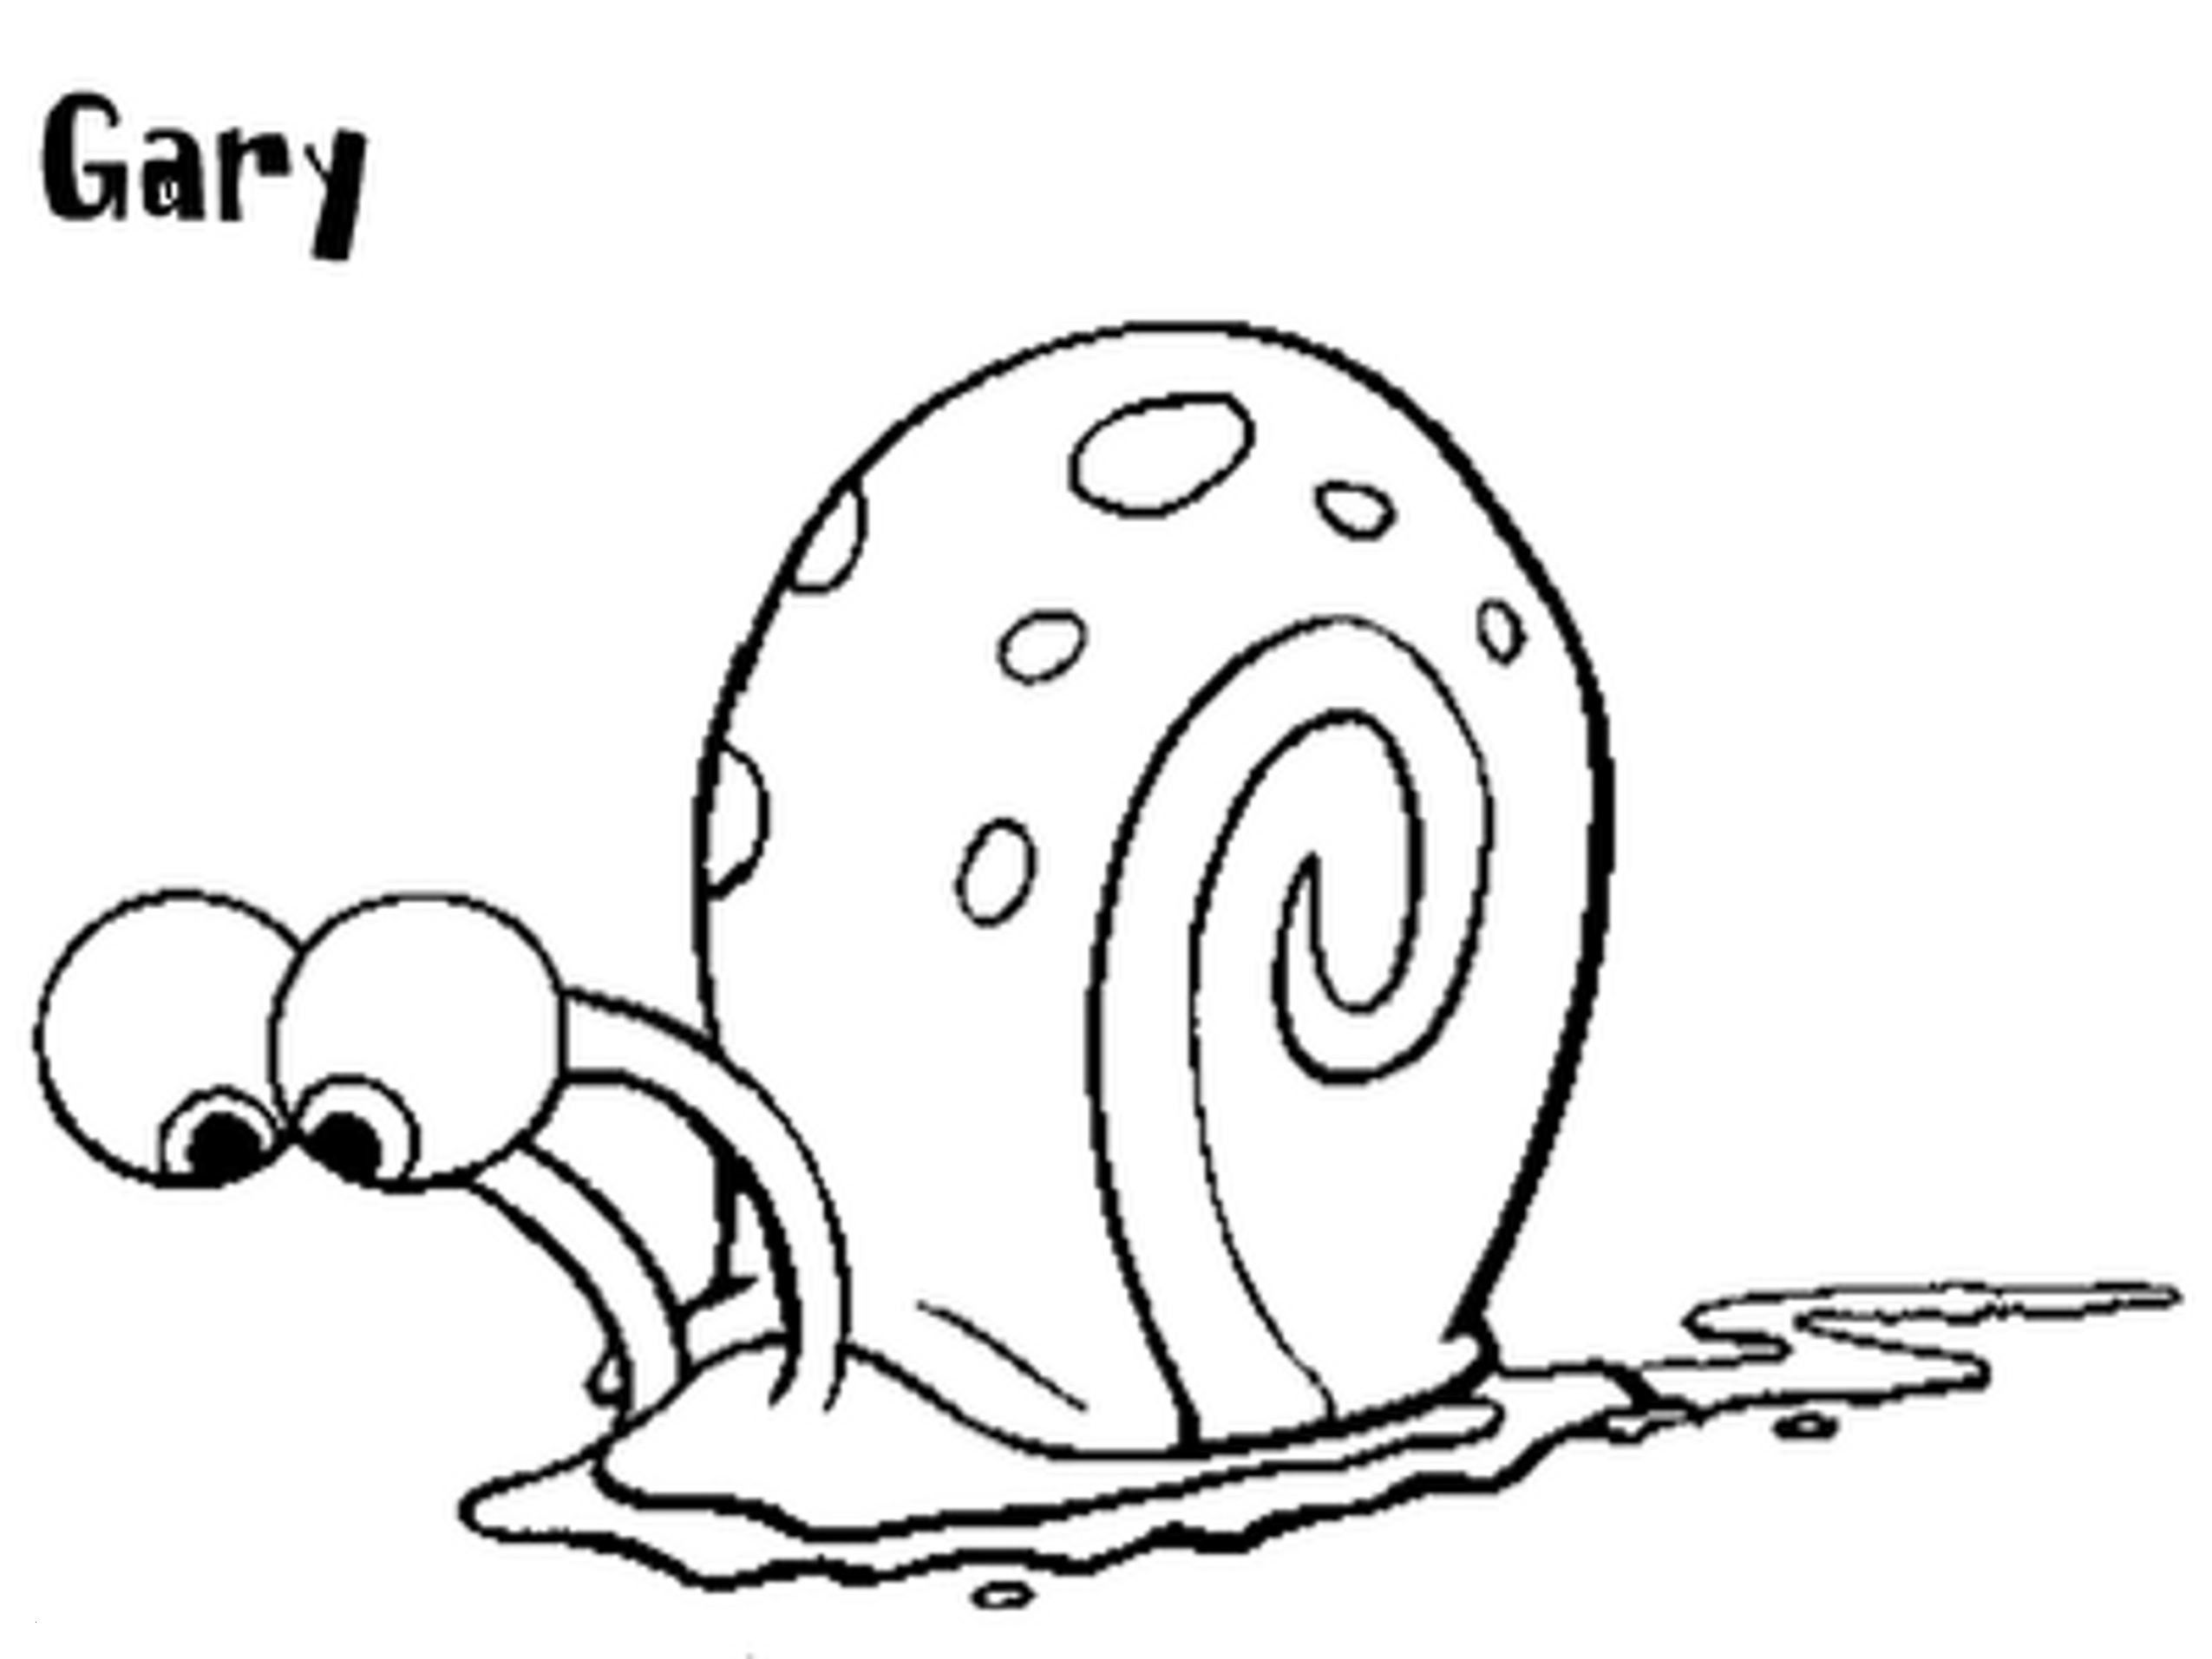 Spongebob Coloring Pages Gary From The Thousand Photographs On The Internet Concerning Spon Spongebob Coloring Nick Jr Coloring Pages Coloring Pages To Print